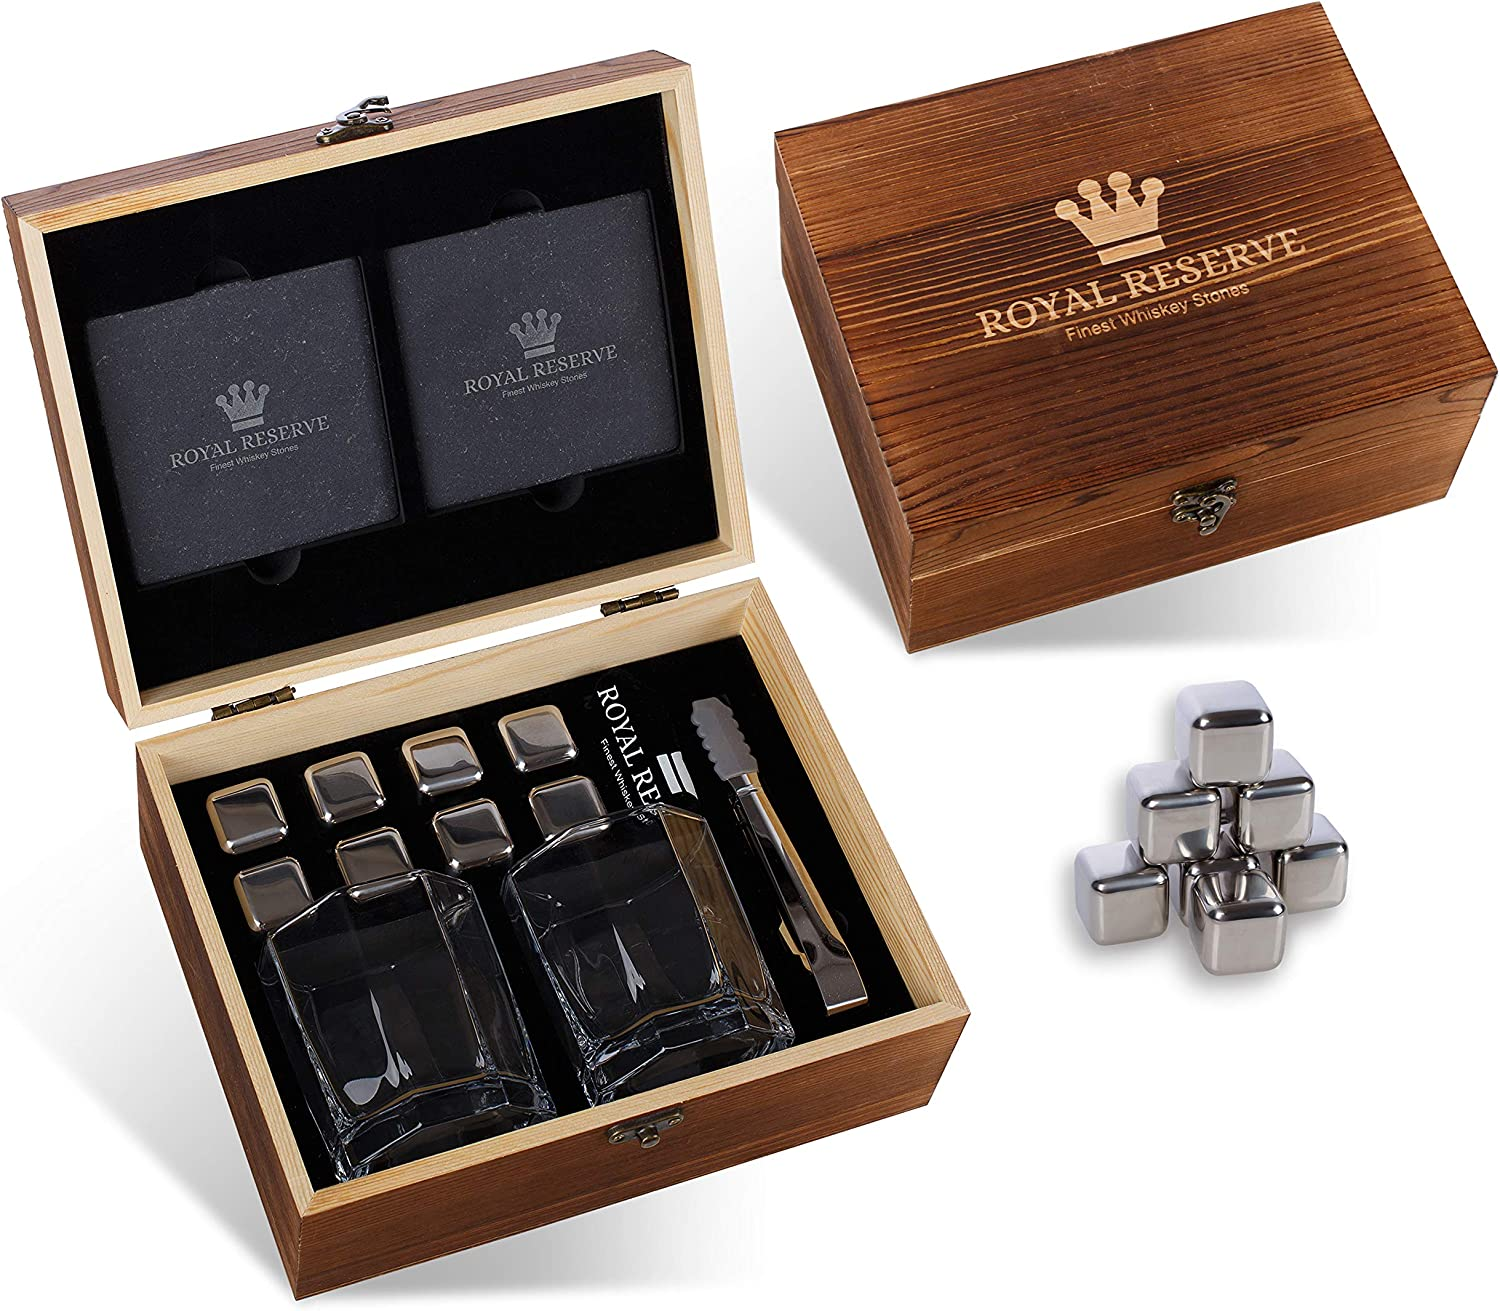 Whiskey Stones Gift Set by Royal Reserve Mens Birthday Gifts Artisan Crafted Metal Stainless Chilling Rocks Scotch Bourbon Glasses Gift for Men Husband Dad Boyfriend Anniversary or Retirement